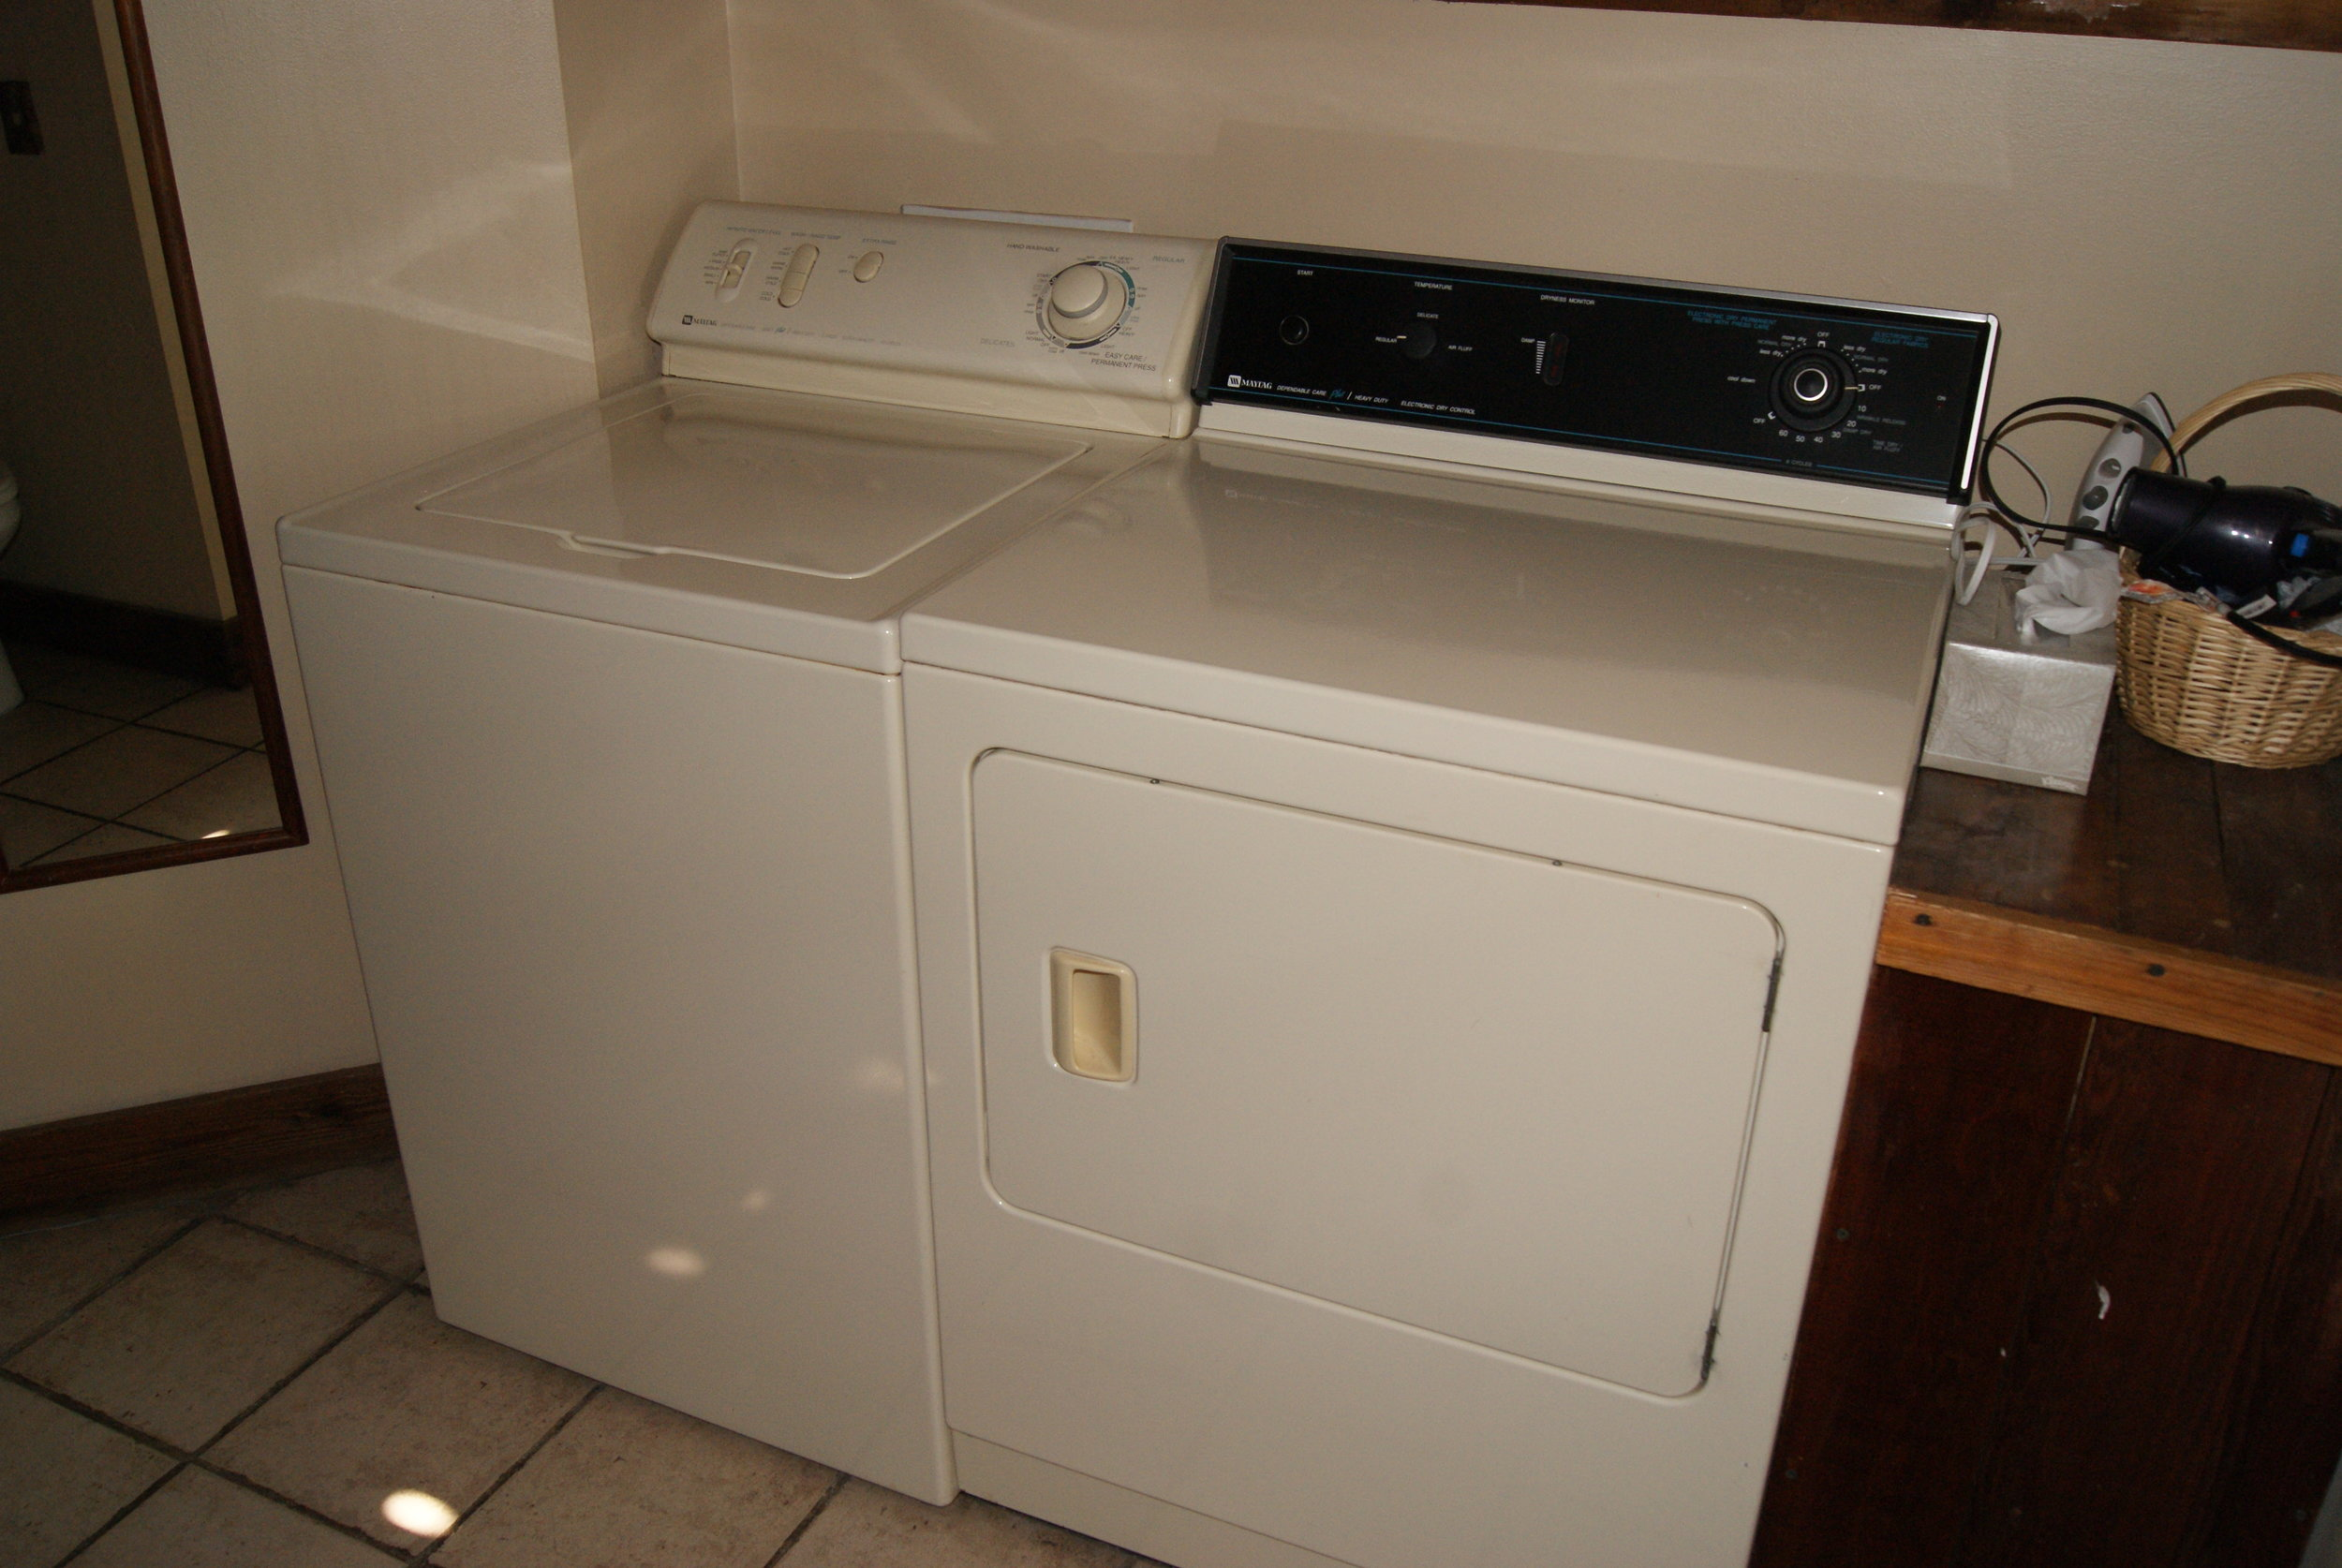 The Lodge West laundry facilities